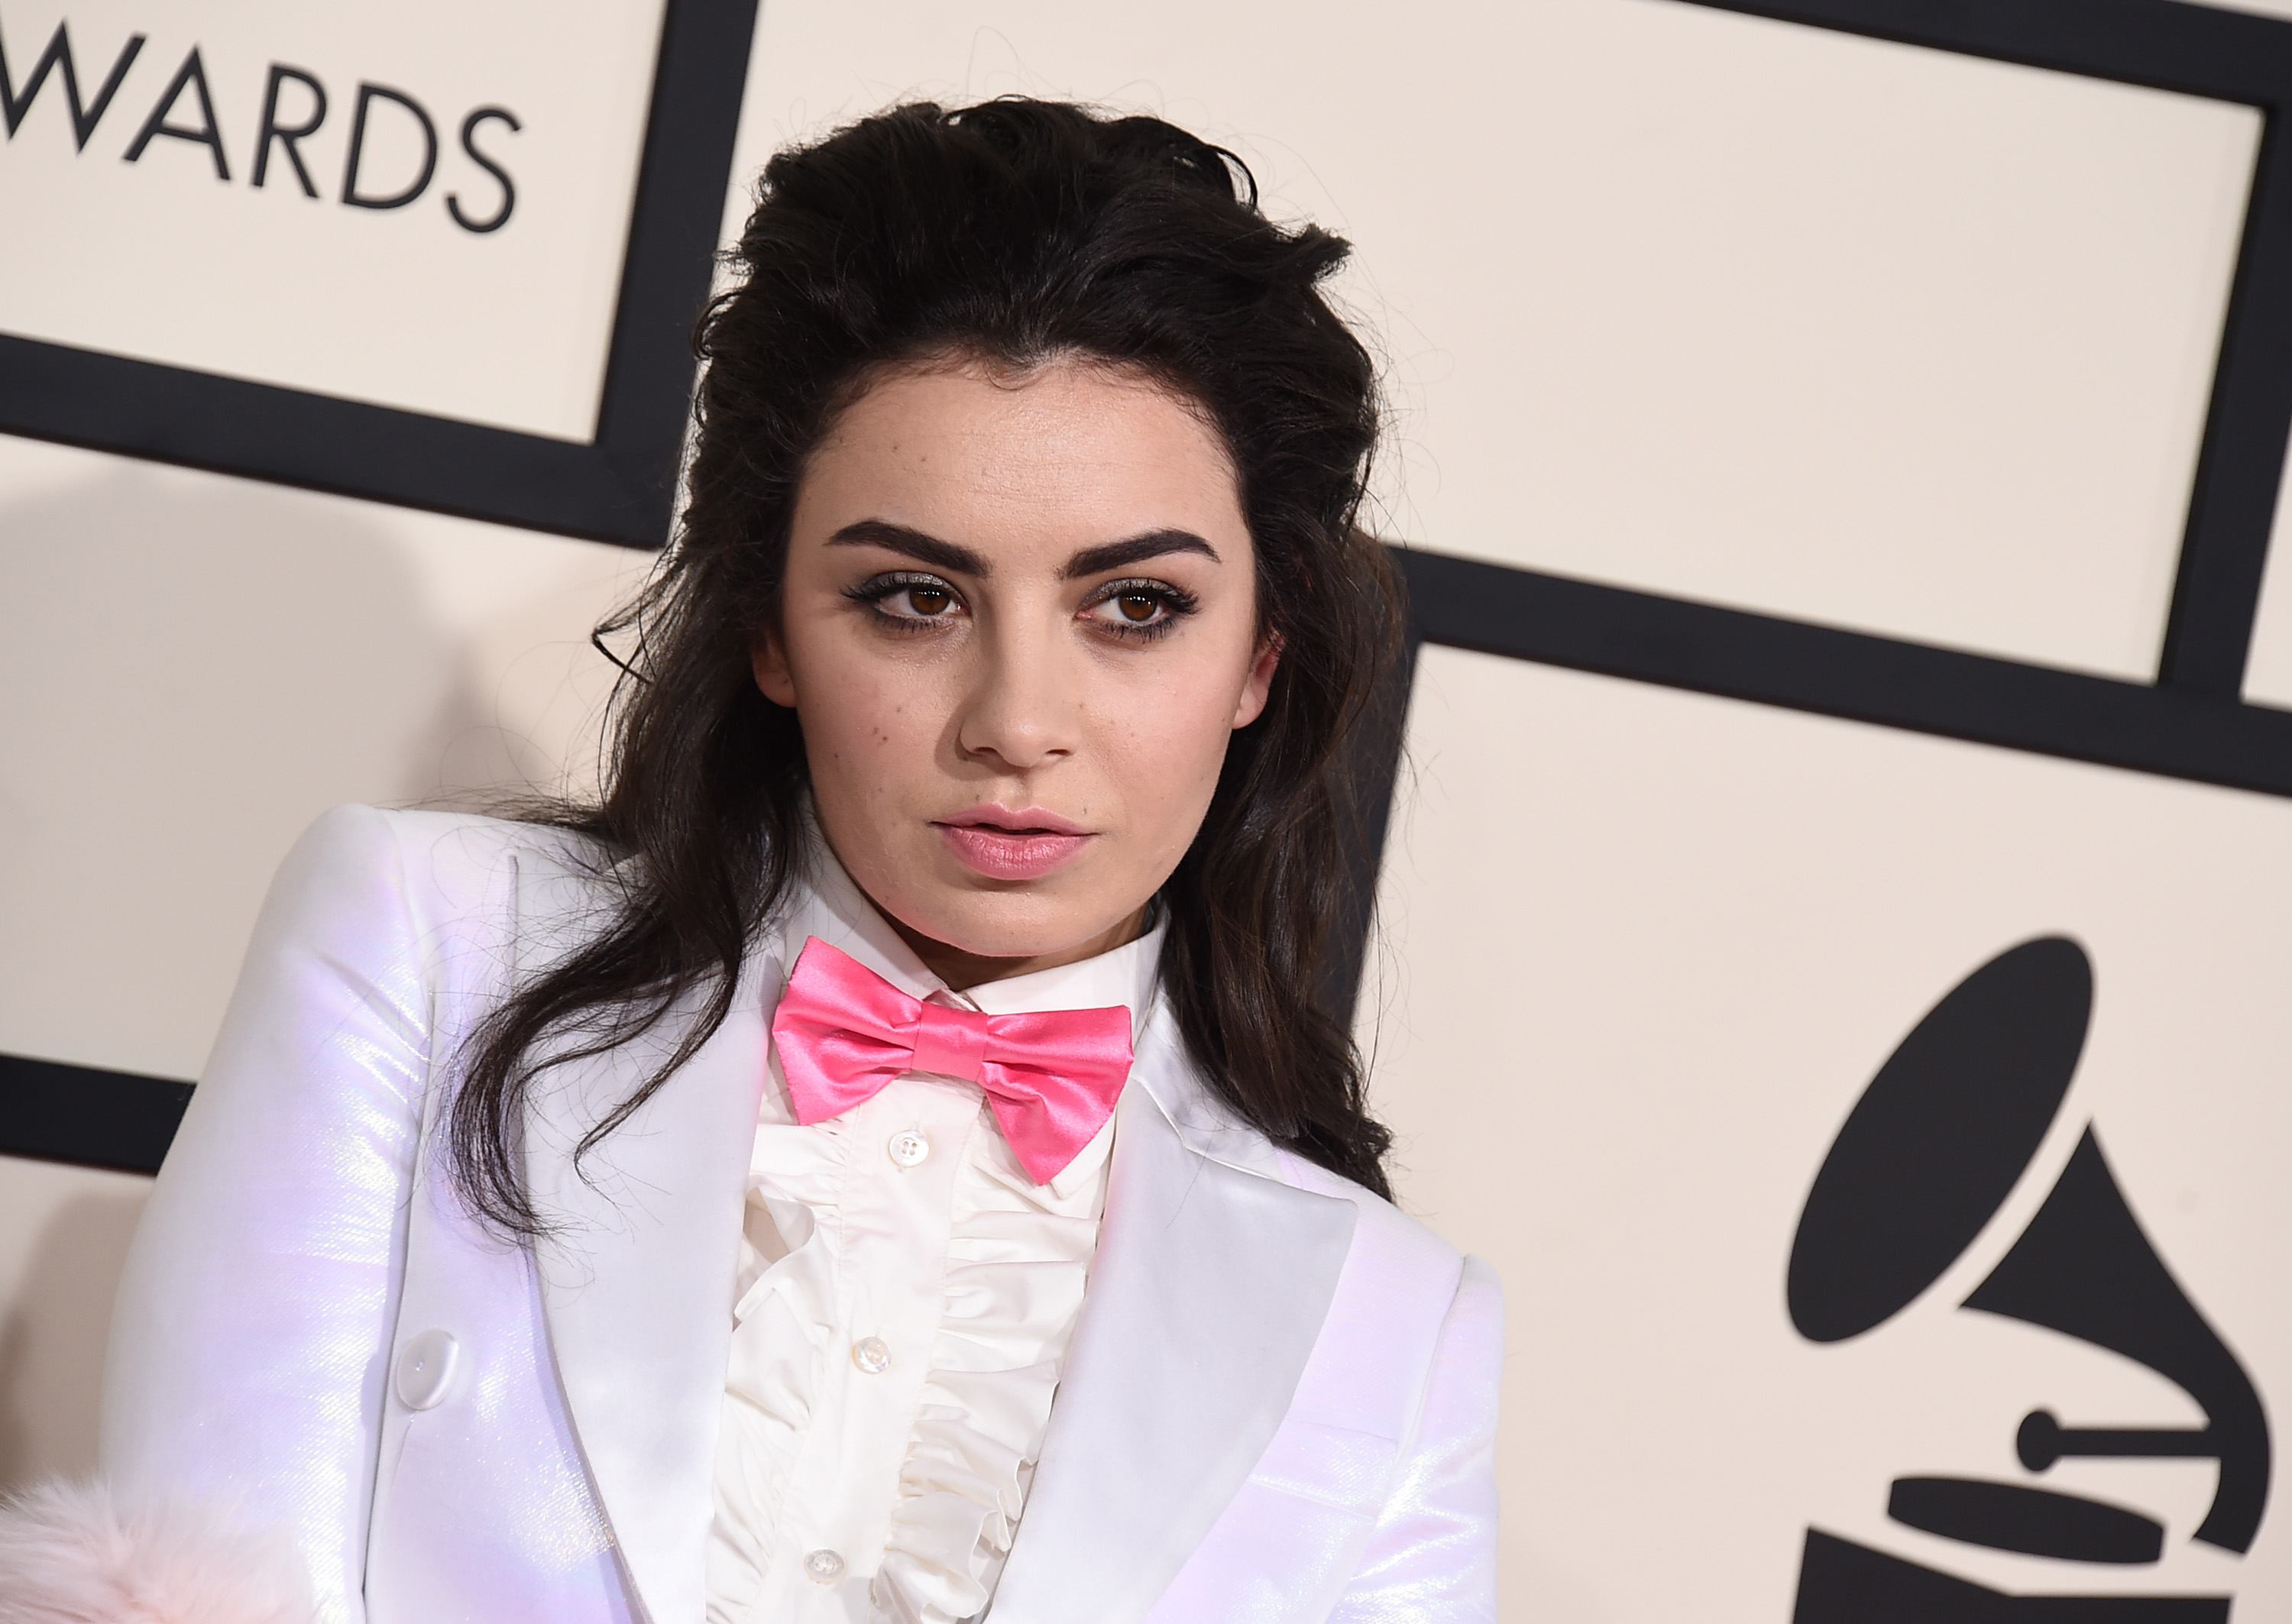 Charli XCX arrives at the 57th annual Grammy Awards at the Staples Center on Sunday, Feb. 8, 2015, in Los Angeles. (Photo by Jordan Strauss/Invision/AP)